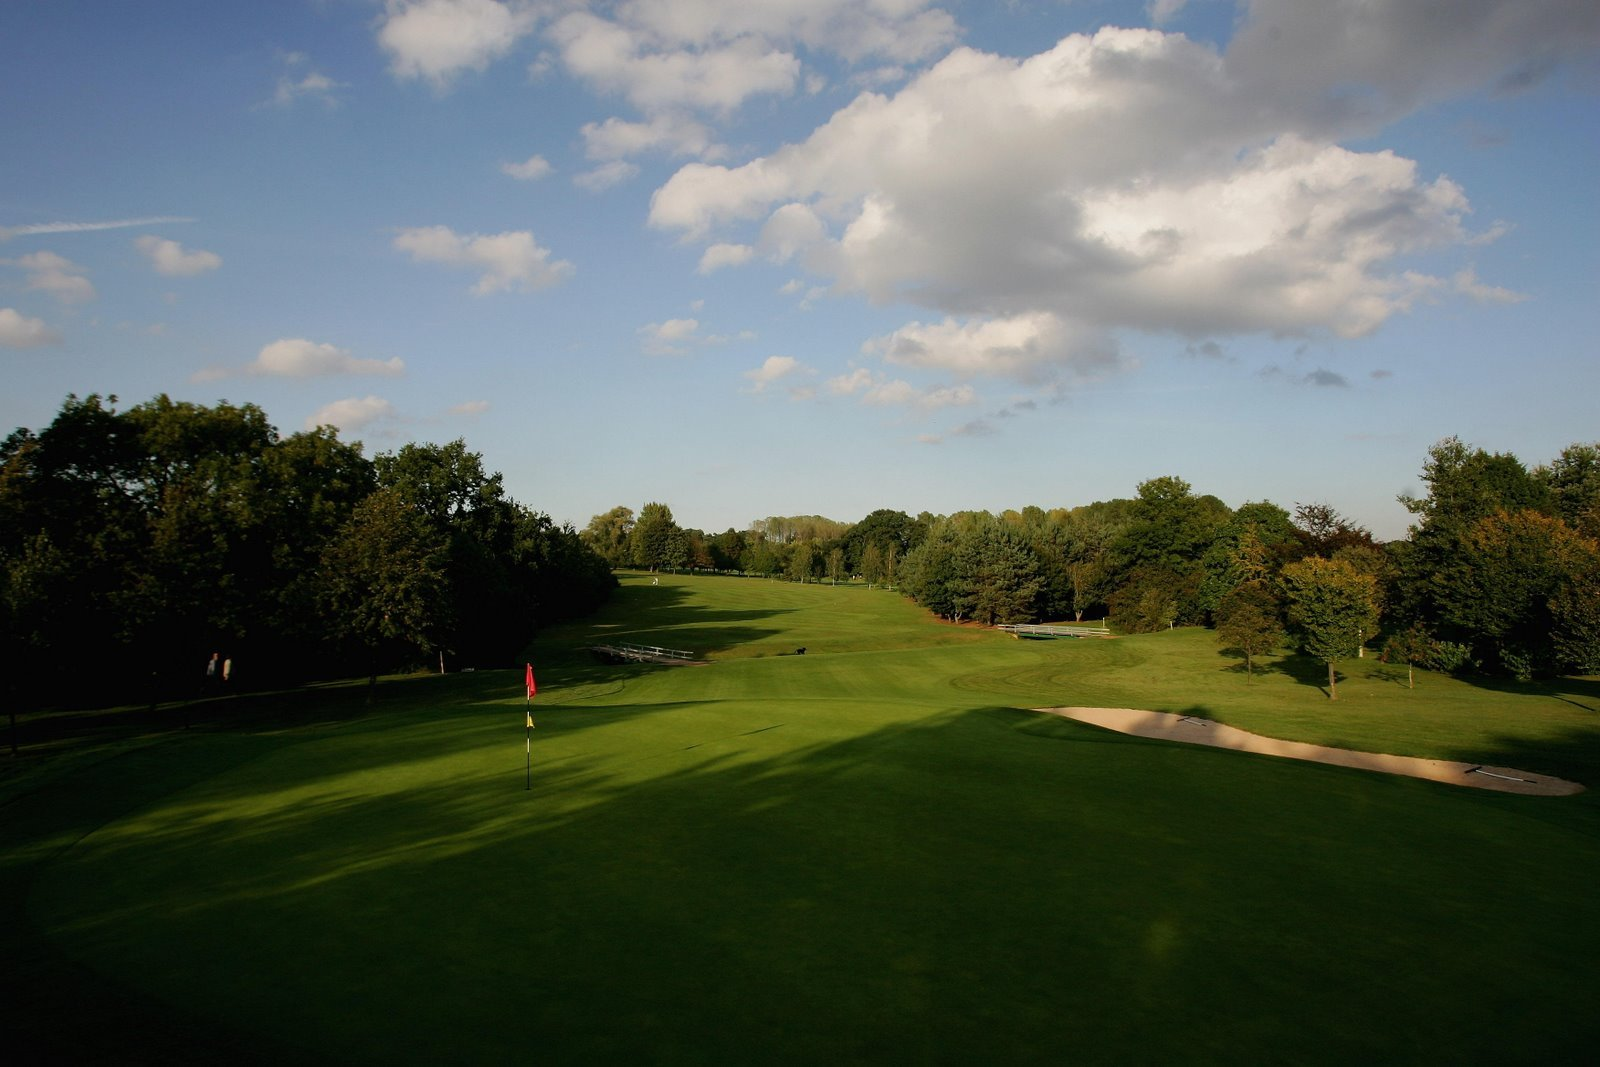 The Leicestershire Golf Club 11th Green